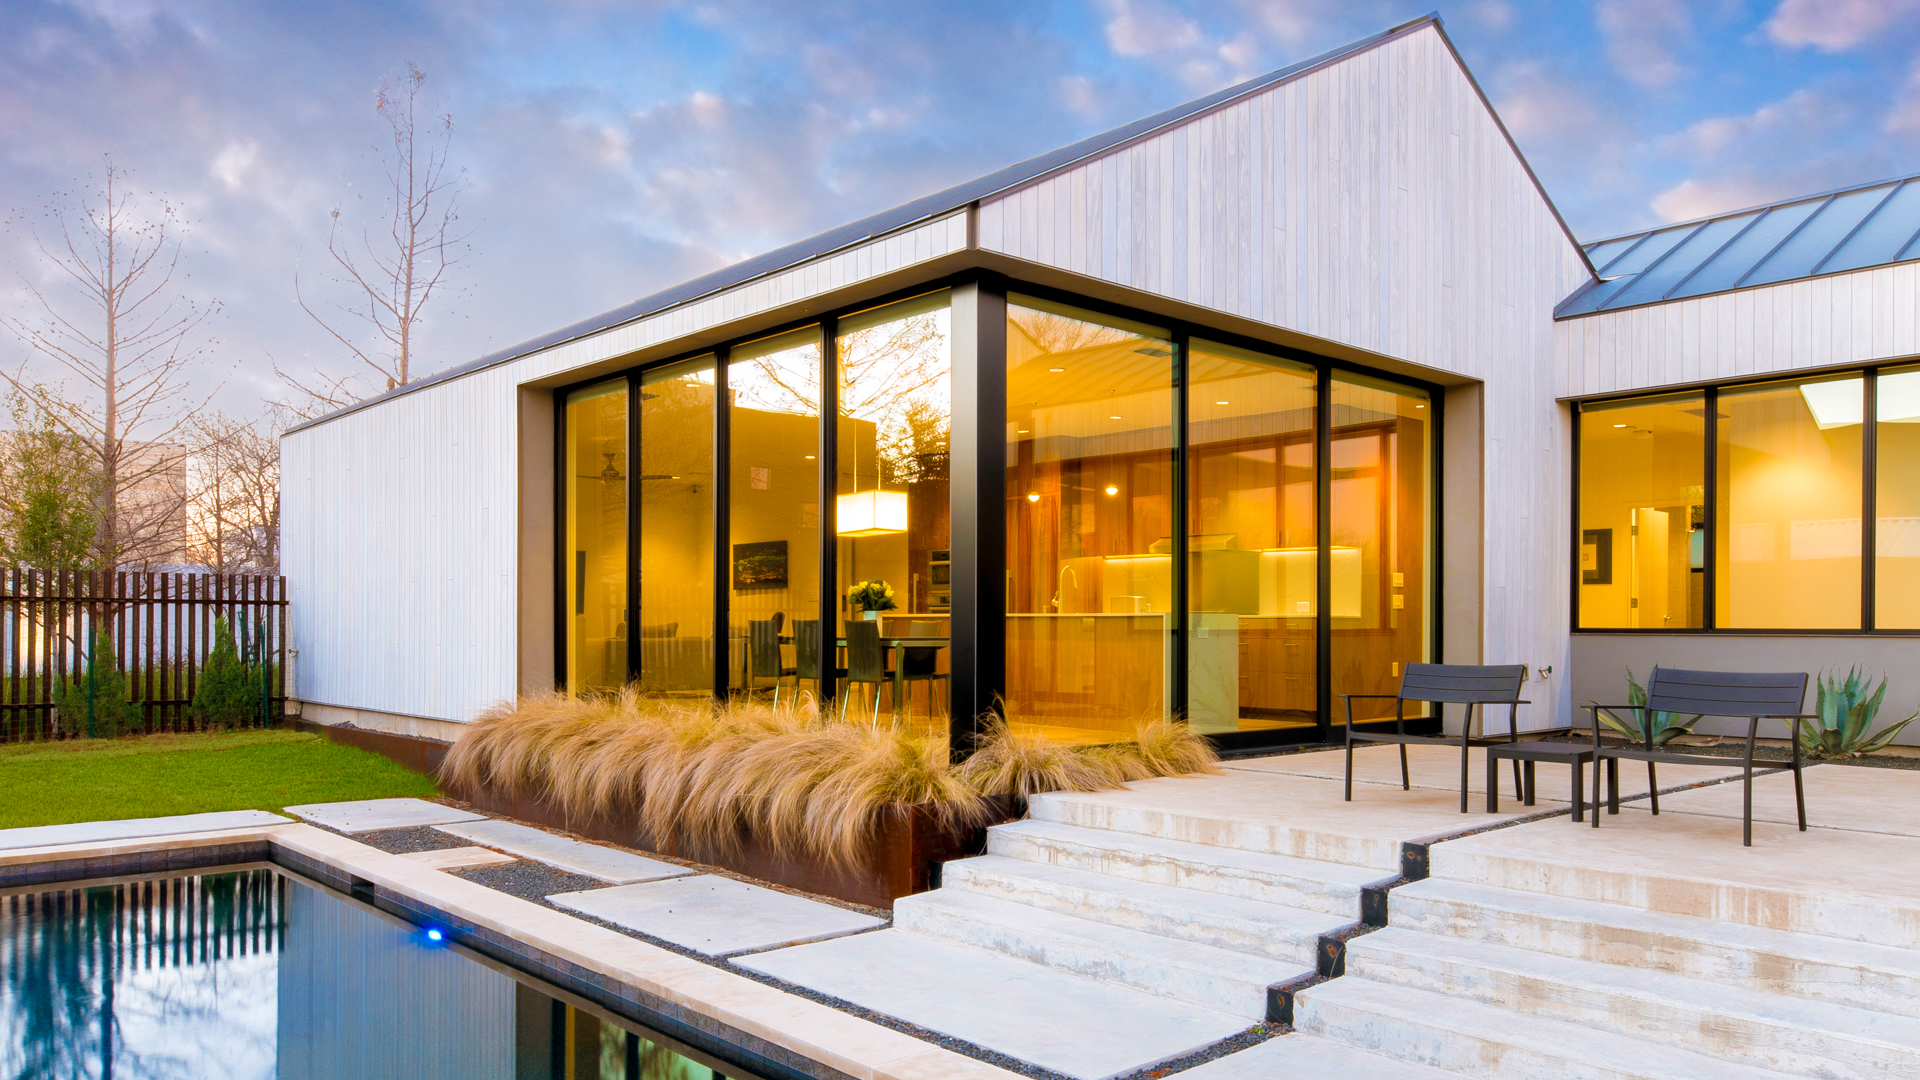 11 Stunning Homes You Wouldn't Know Are Eco-Friendly